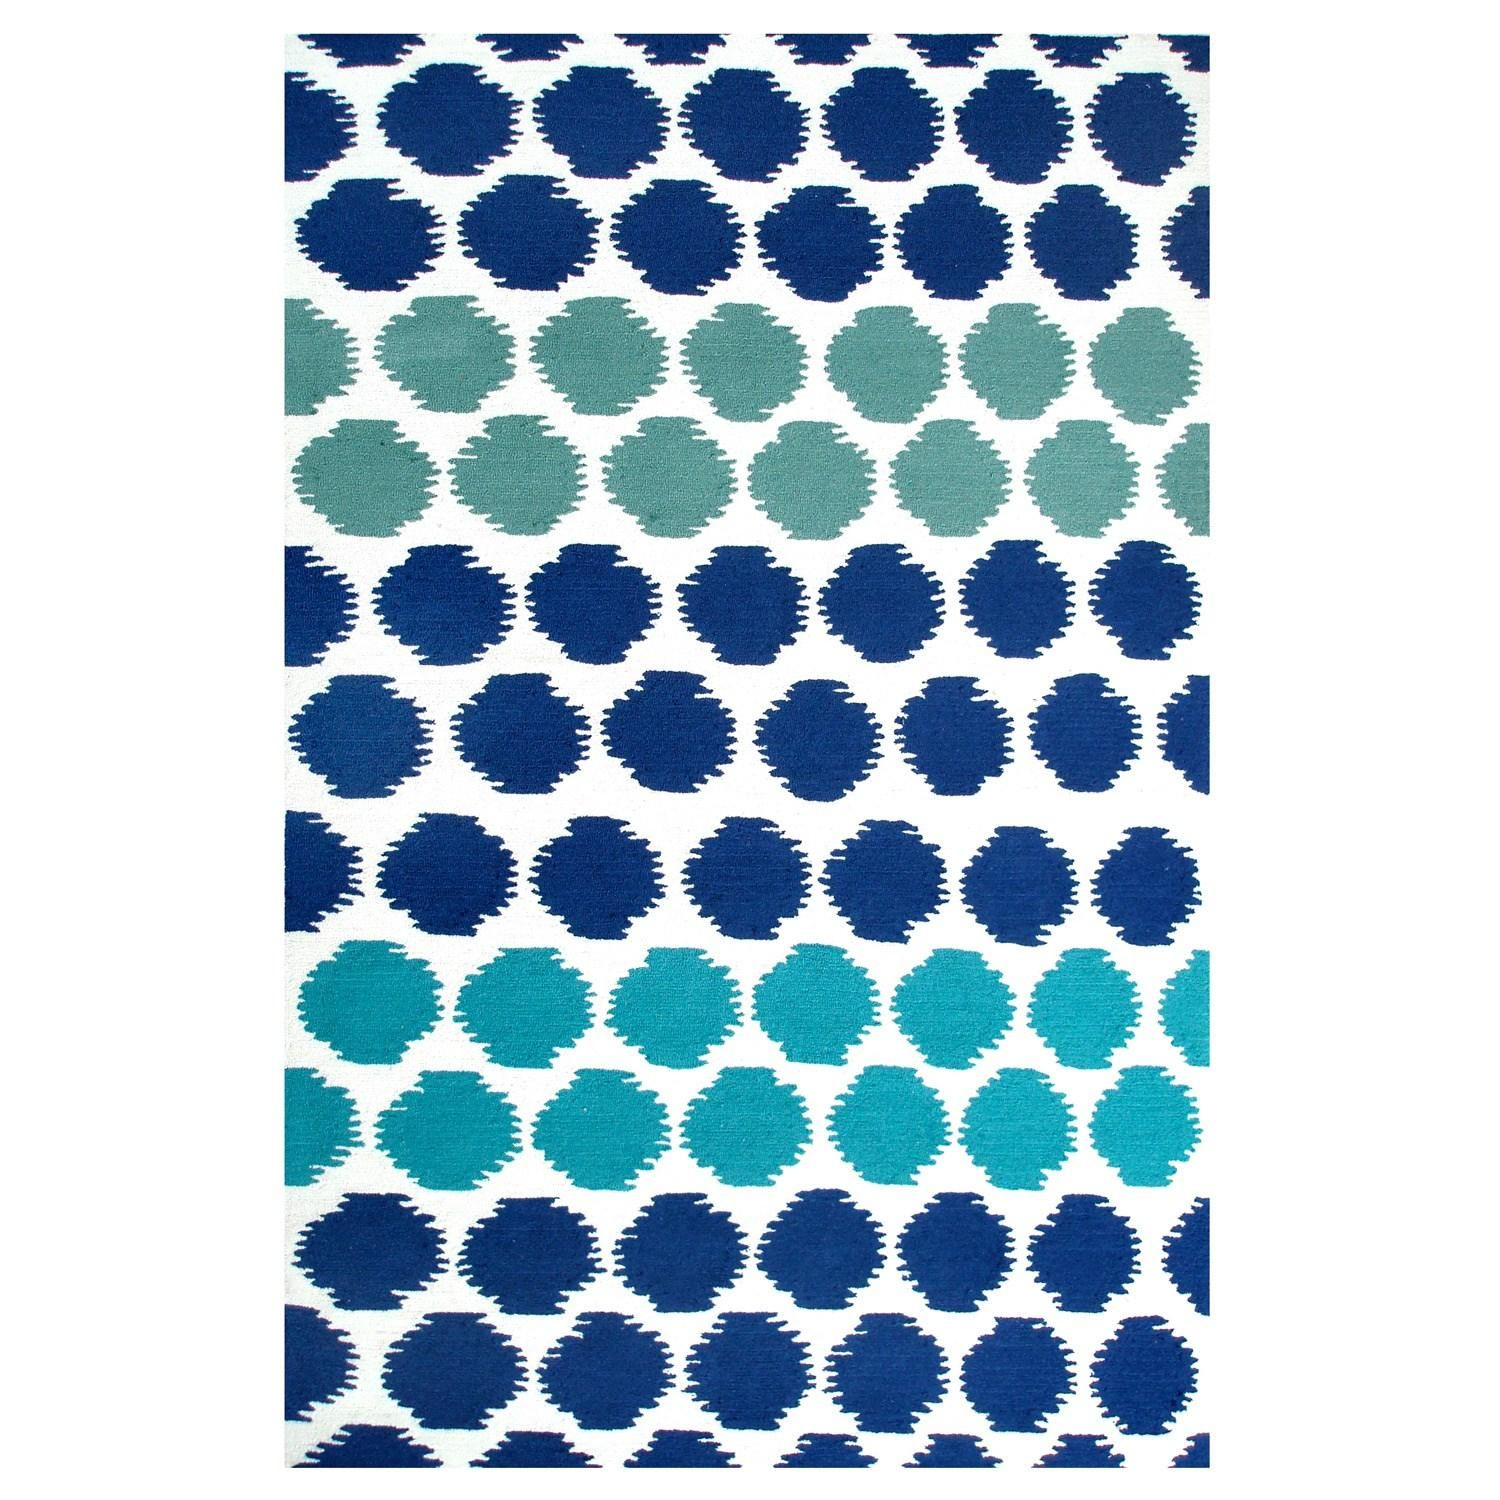 Green Navy Rug: A Fun Polka Dot Rug In Navy Blue, Turquoise, And Teal